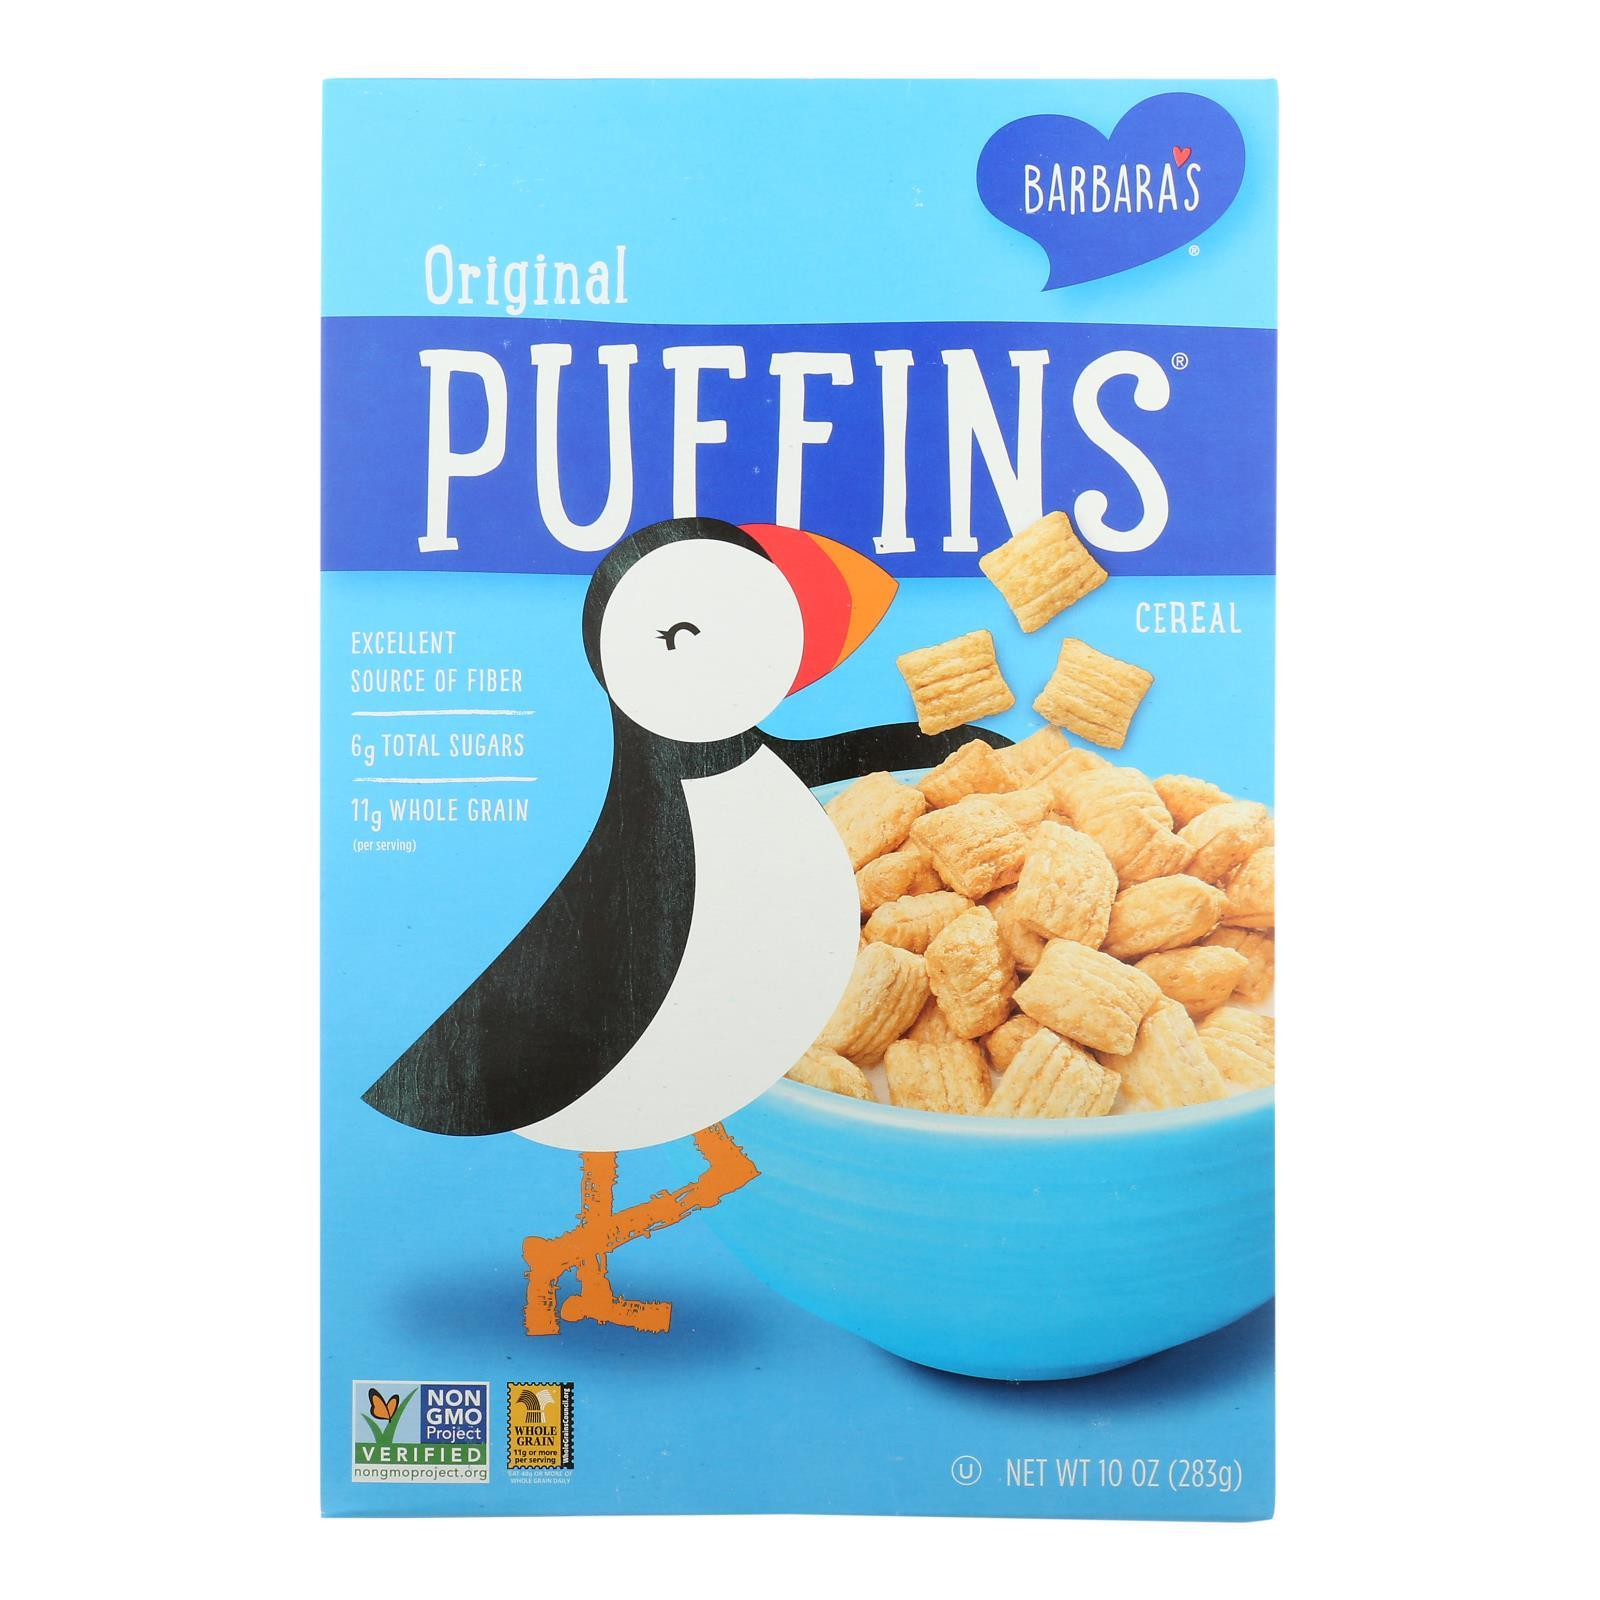 Barbara's Bakery - Puffins Cereal - Original - Case Of 12 - 10 Oz. - BeeGreen